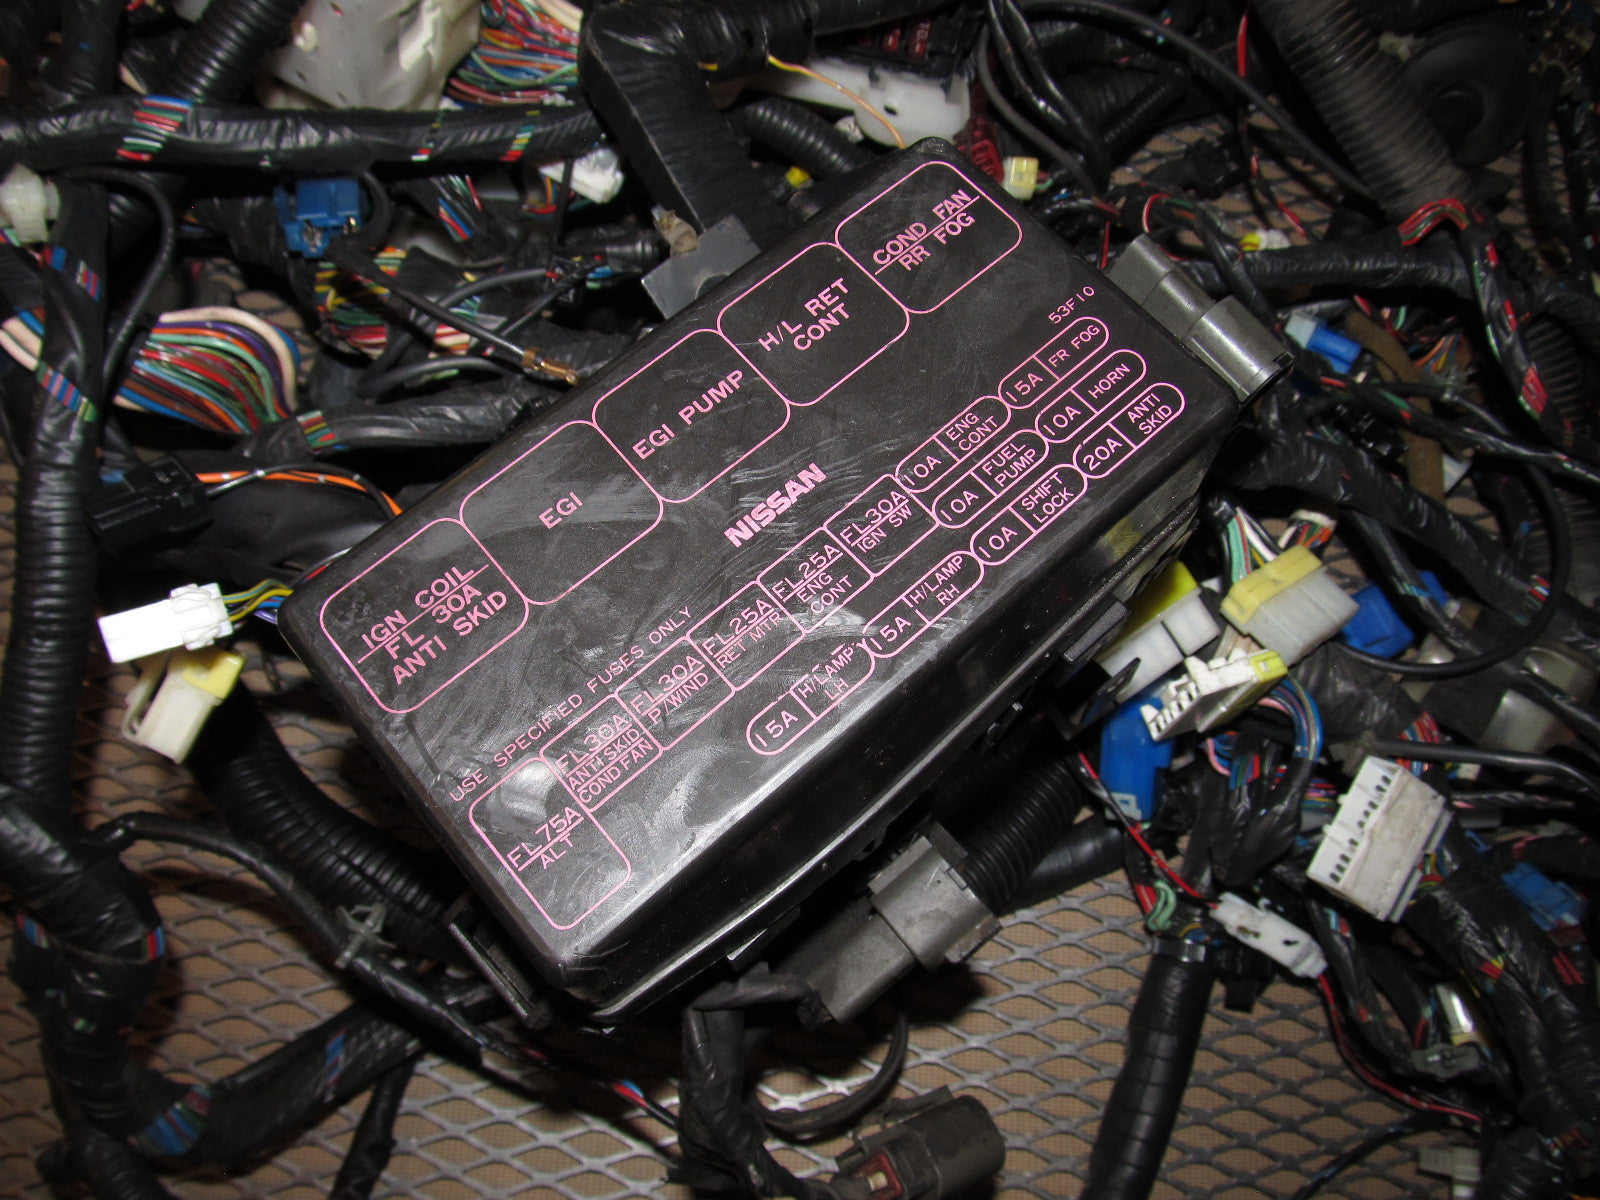 91 Rx7 Fuse Box Great Installation Of Wiring Diagram Schematic Rh 15 Yehonalatapes De 88